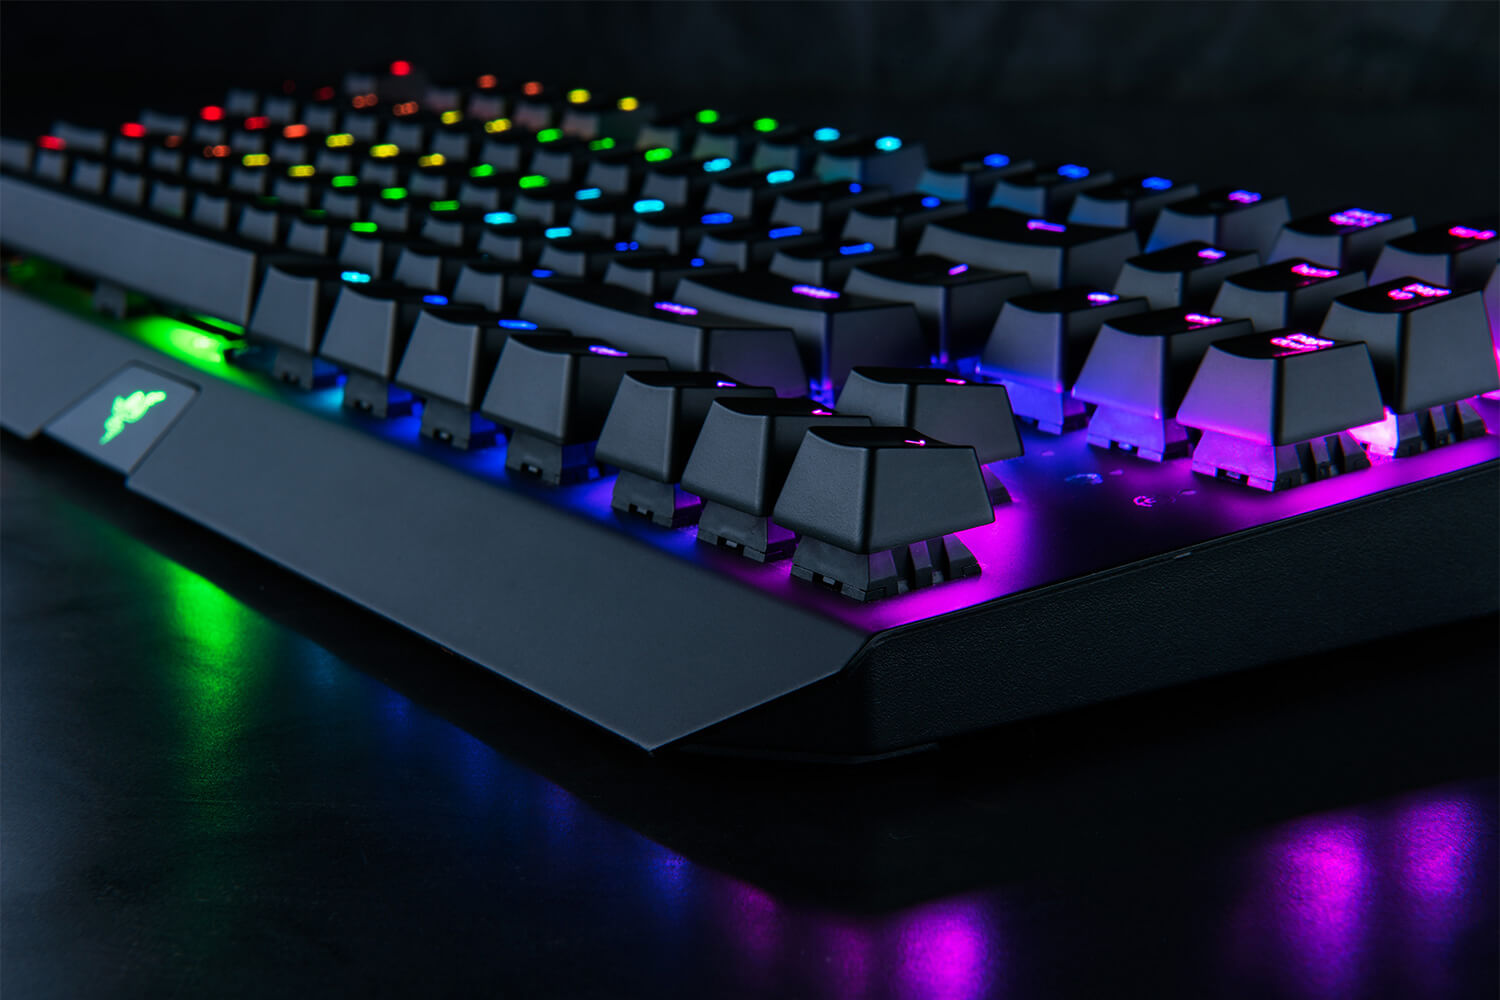 how to change the colors on razer chroma keyboard